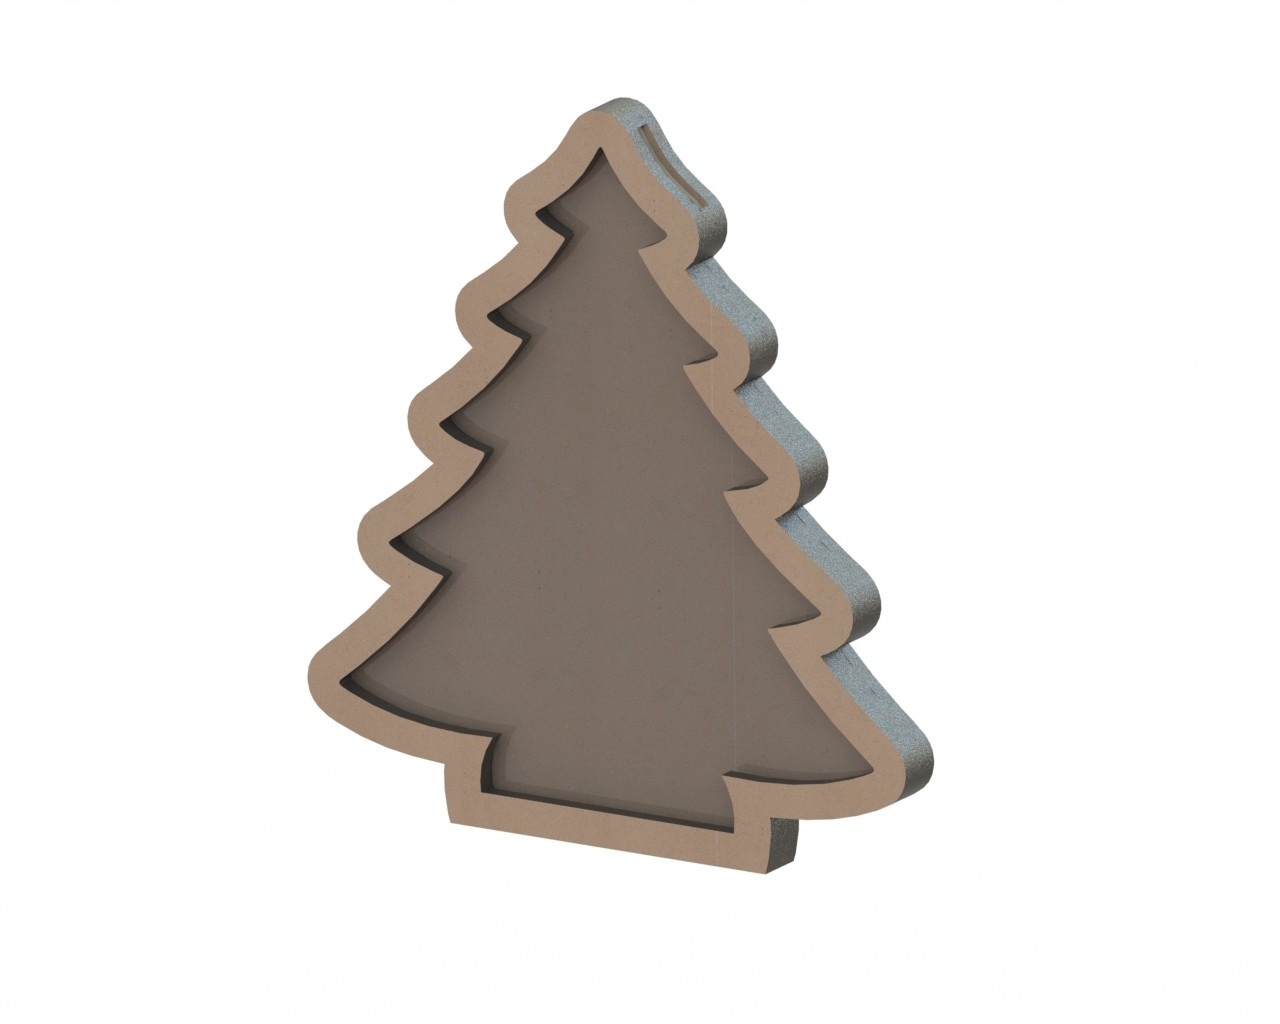 Christmas Tree Images Free Download.Mdf Christmas Tree Free Vector Cdr Download 3axis Co